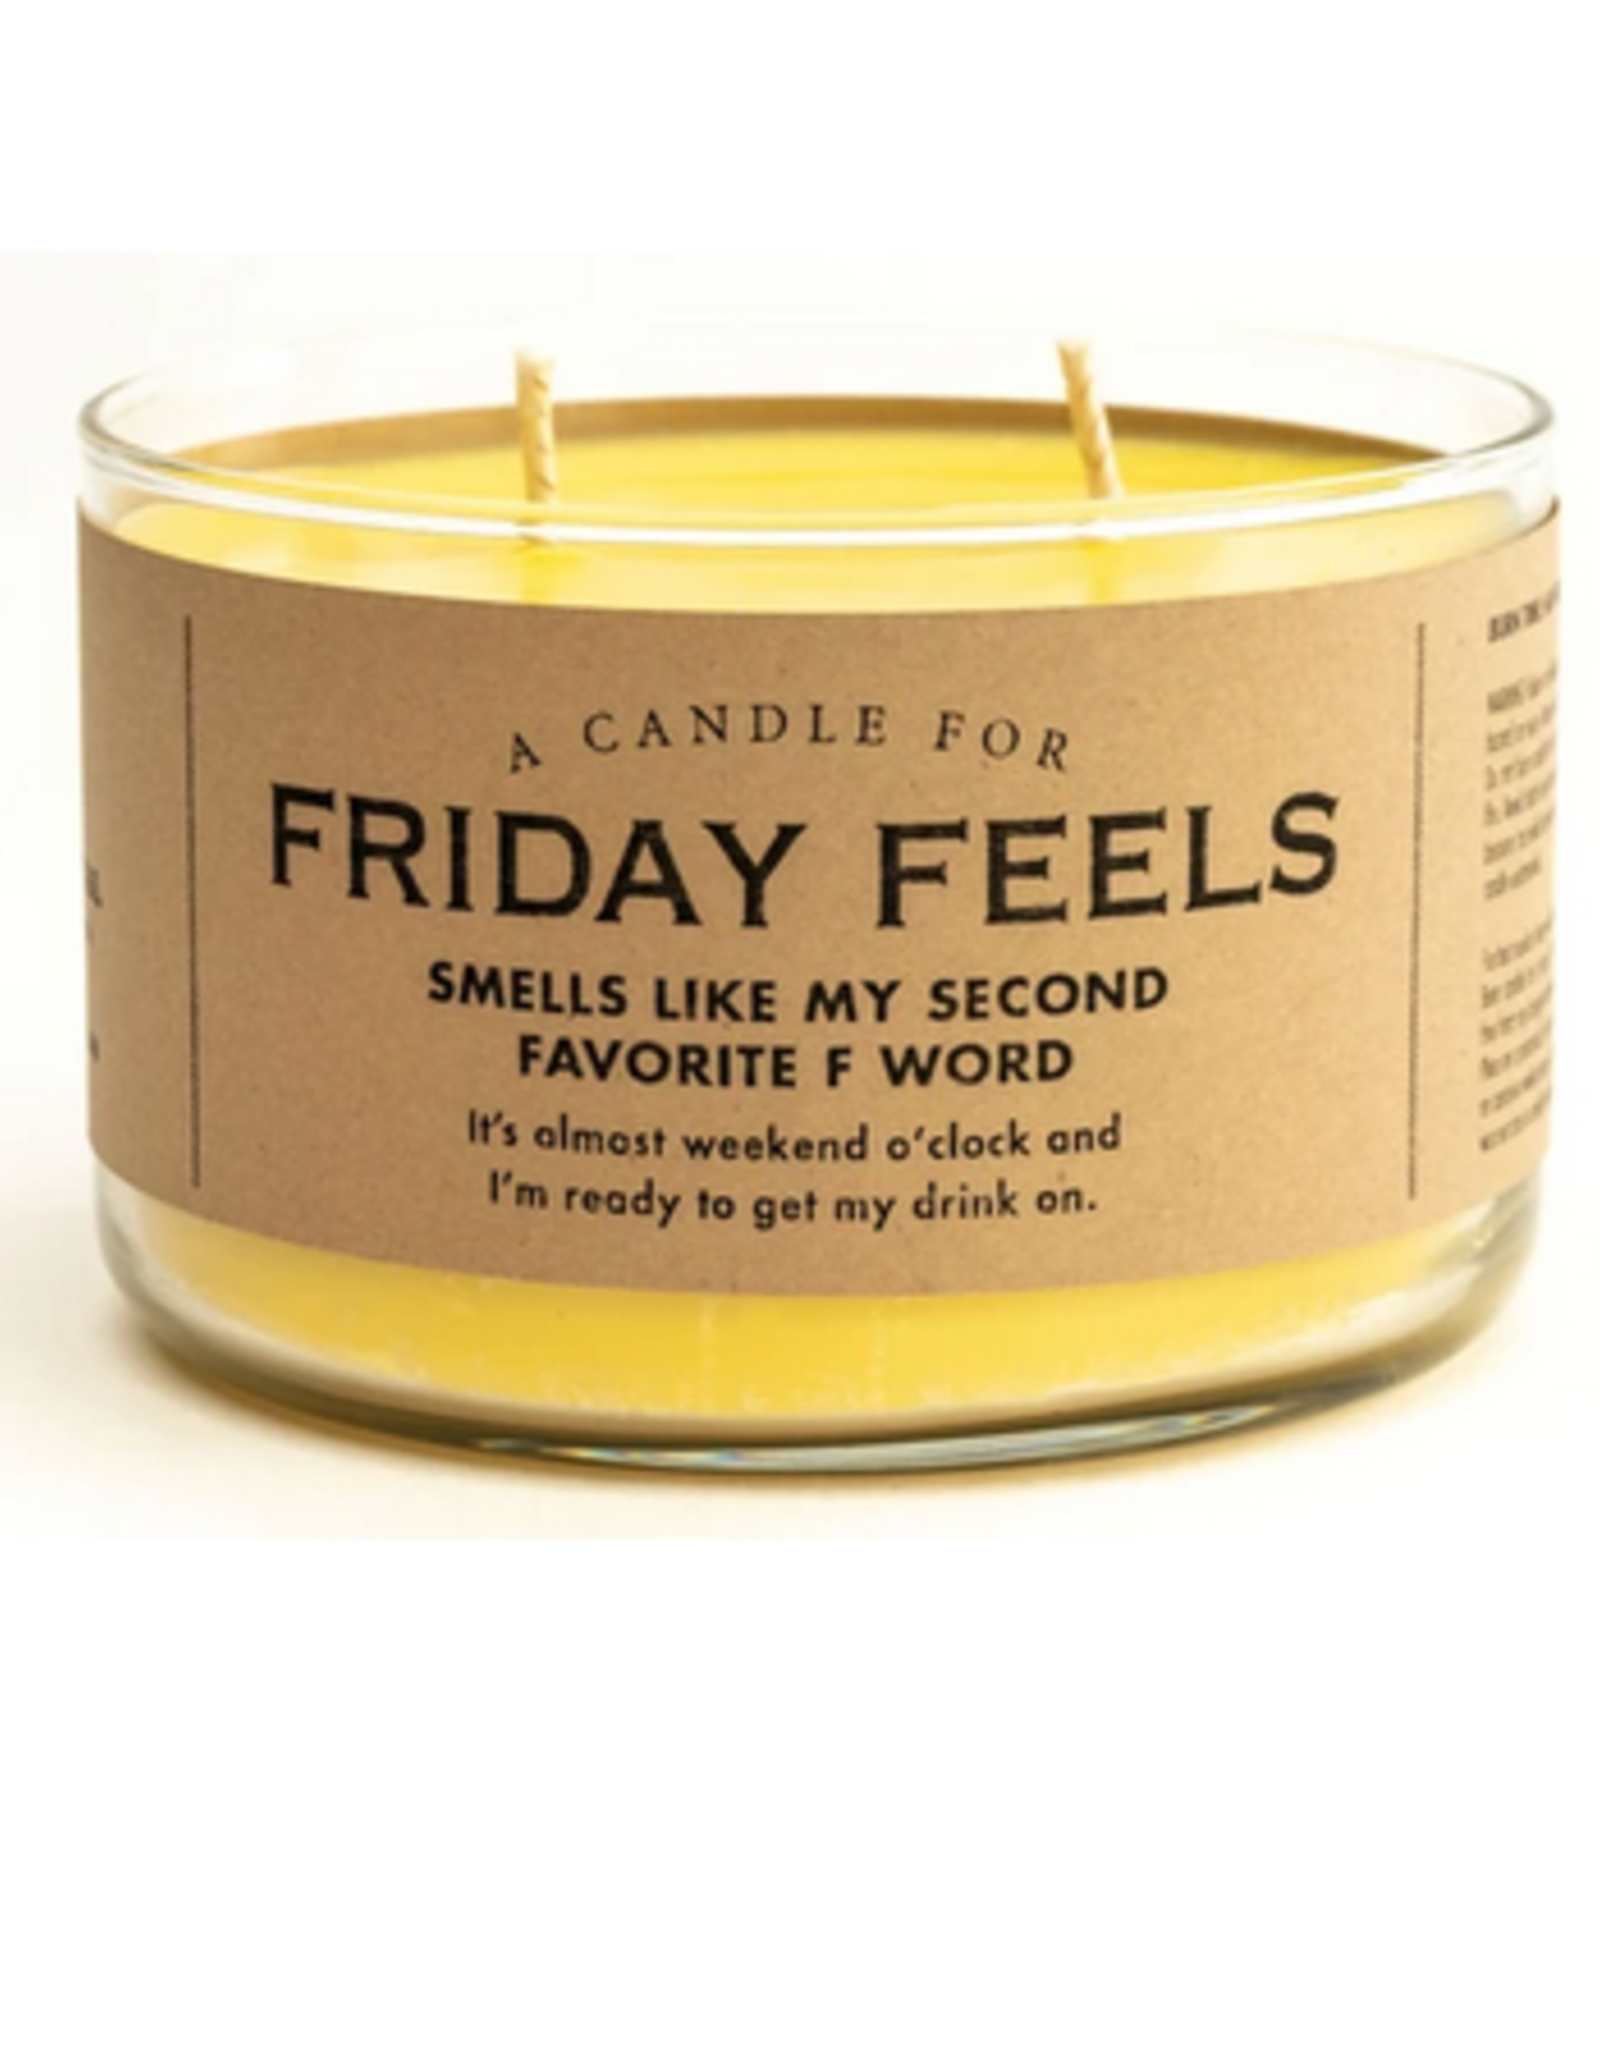 A Candle for Friday Feels (Lunchtime Cocktails Scented)